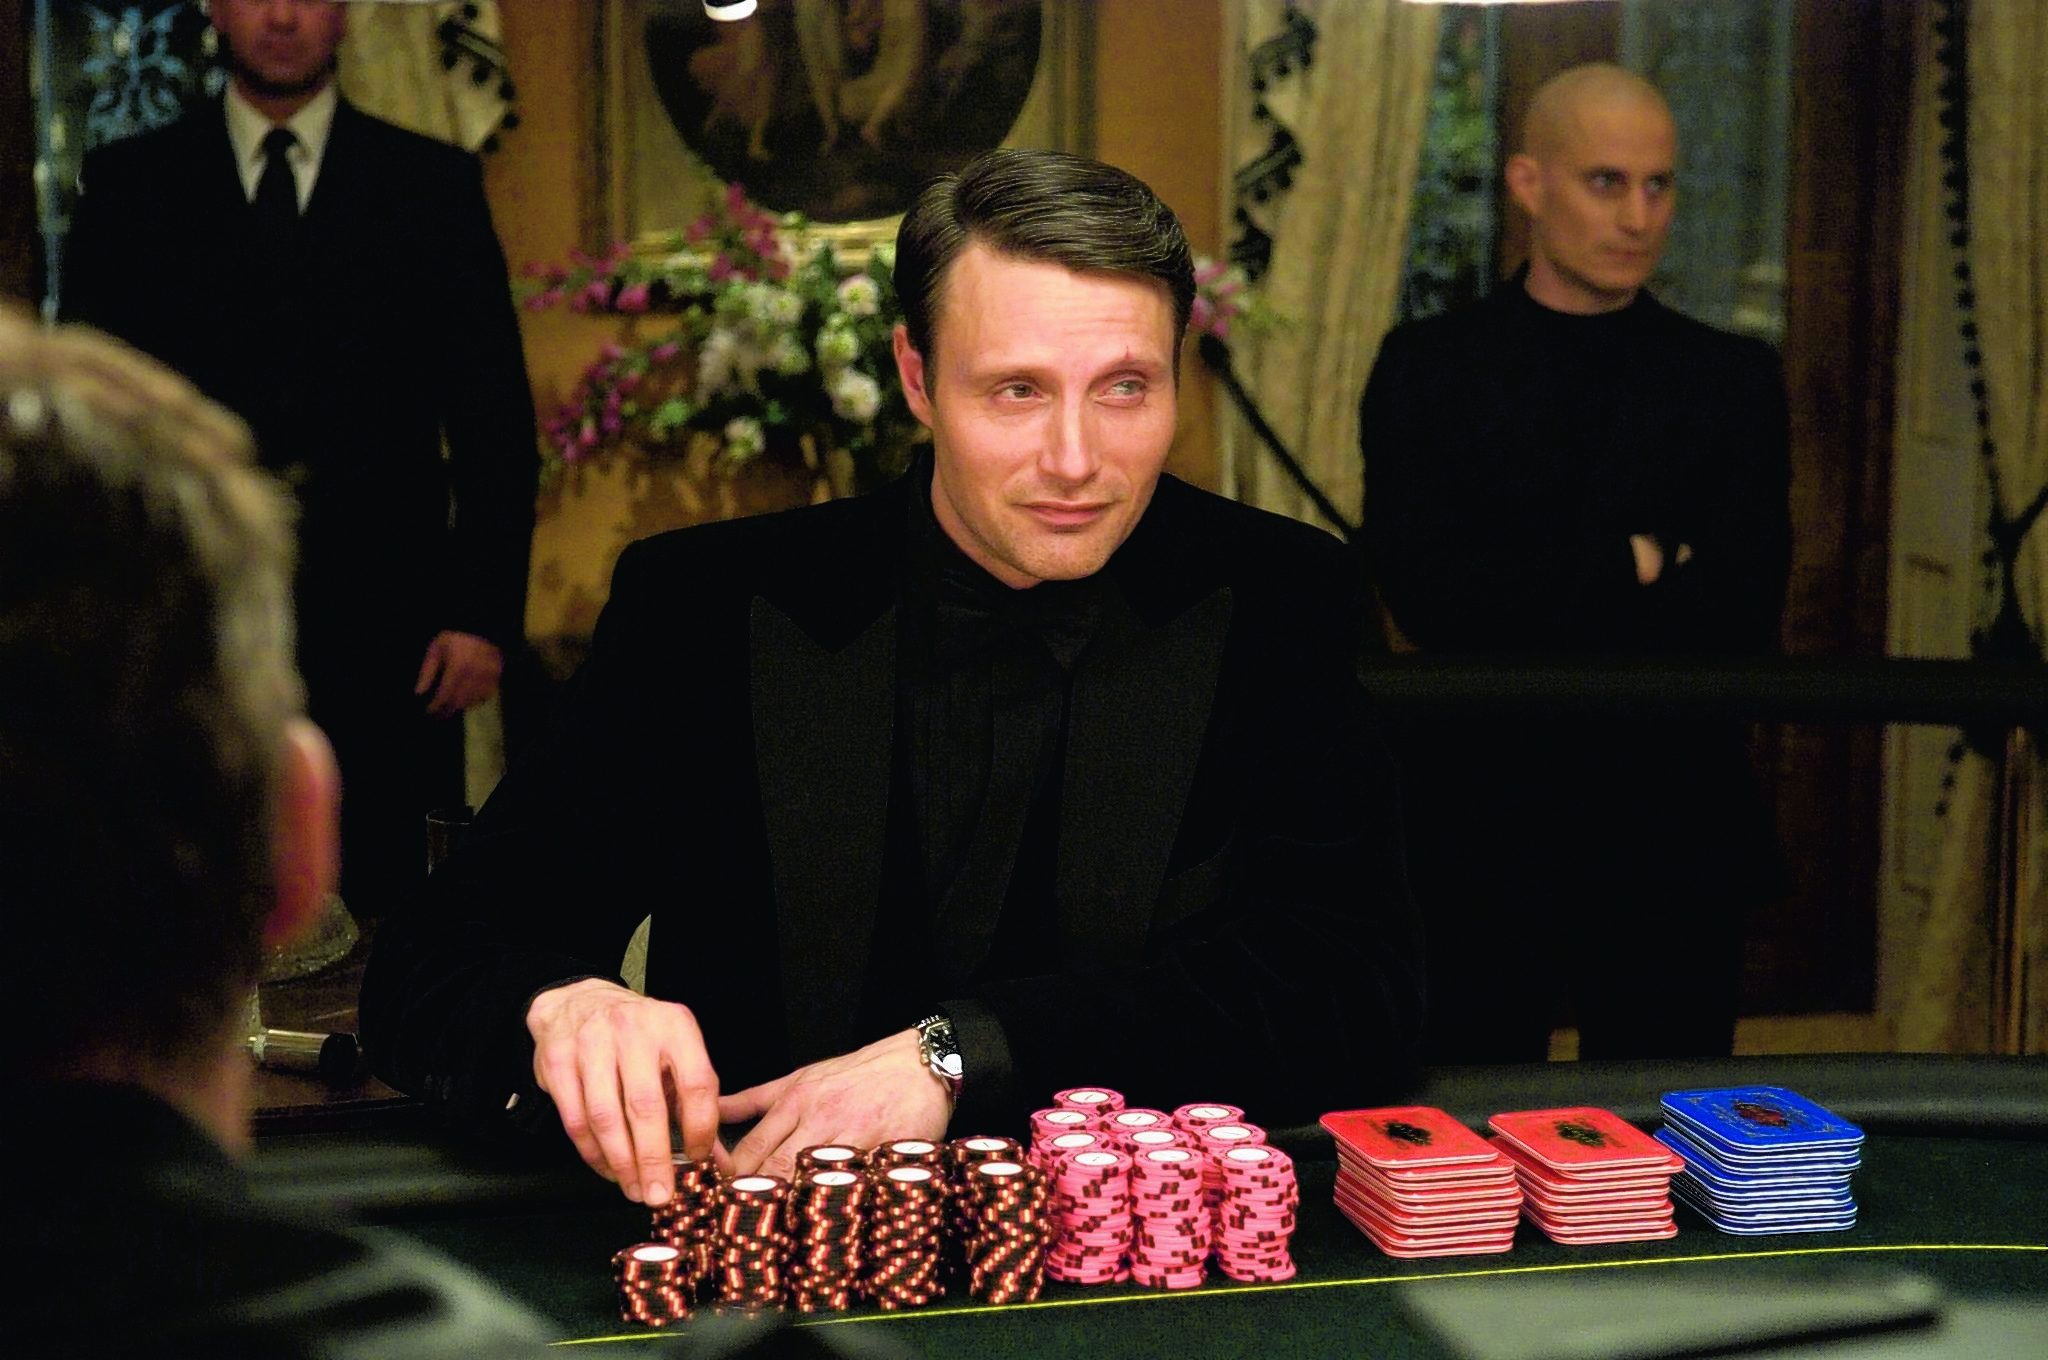 Mads Mikkelsen as Le Chiffre